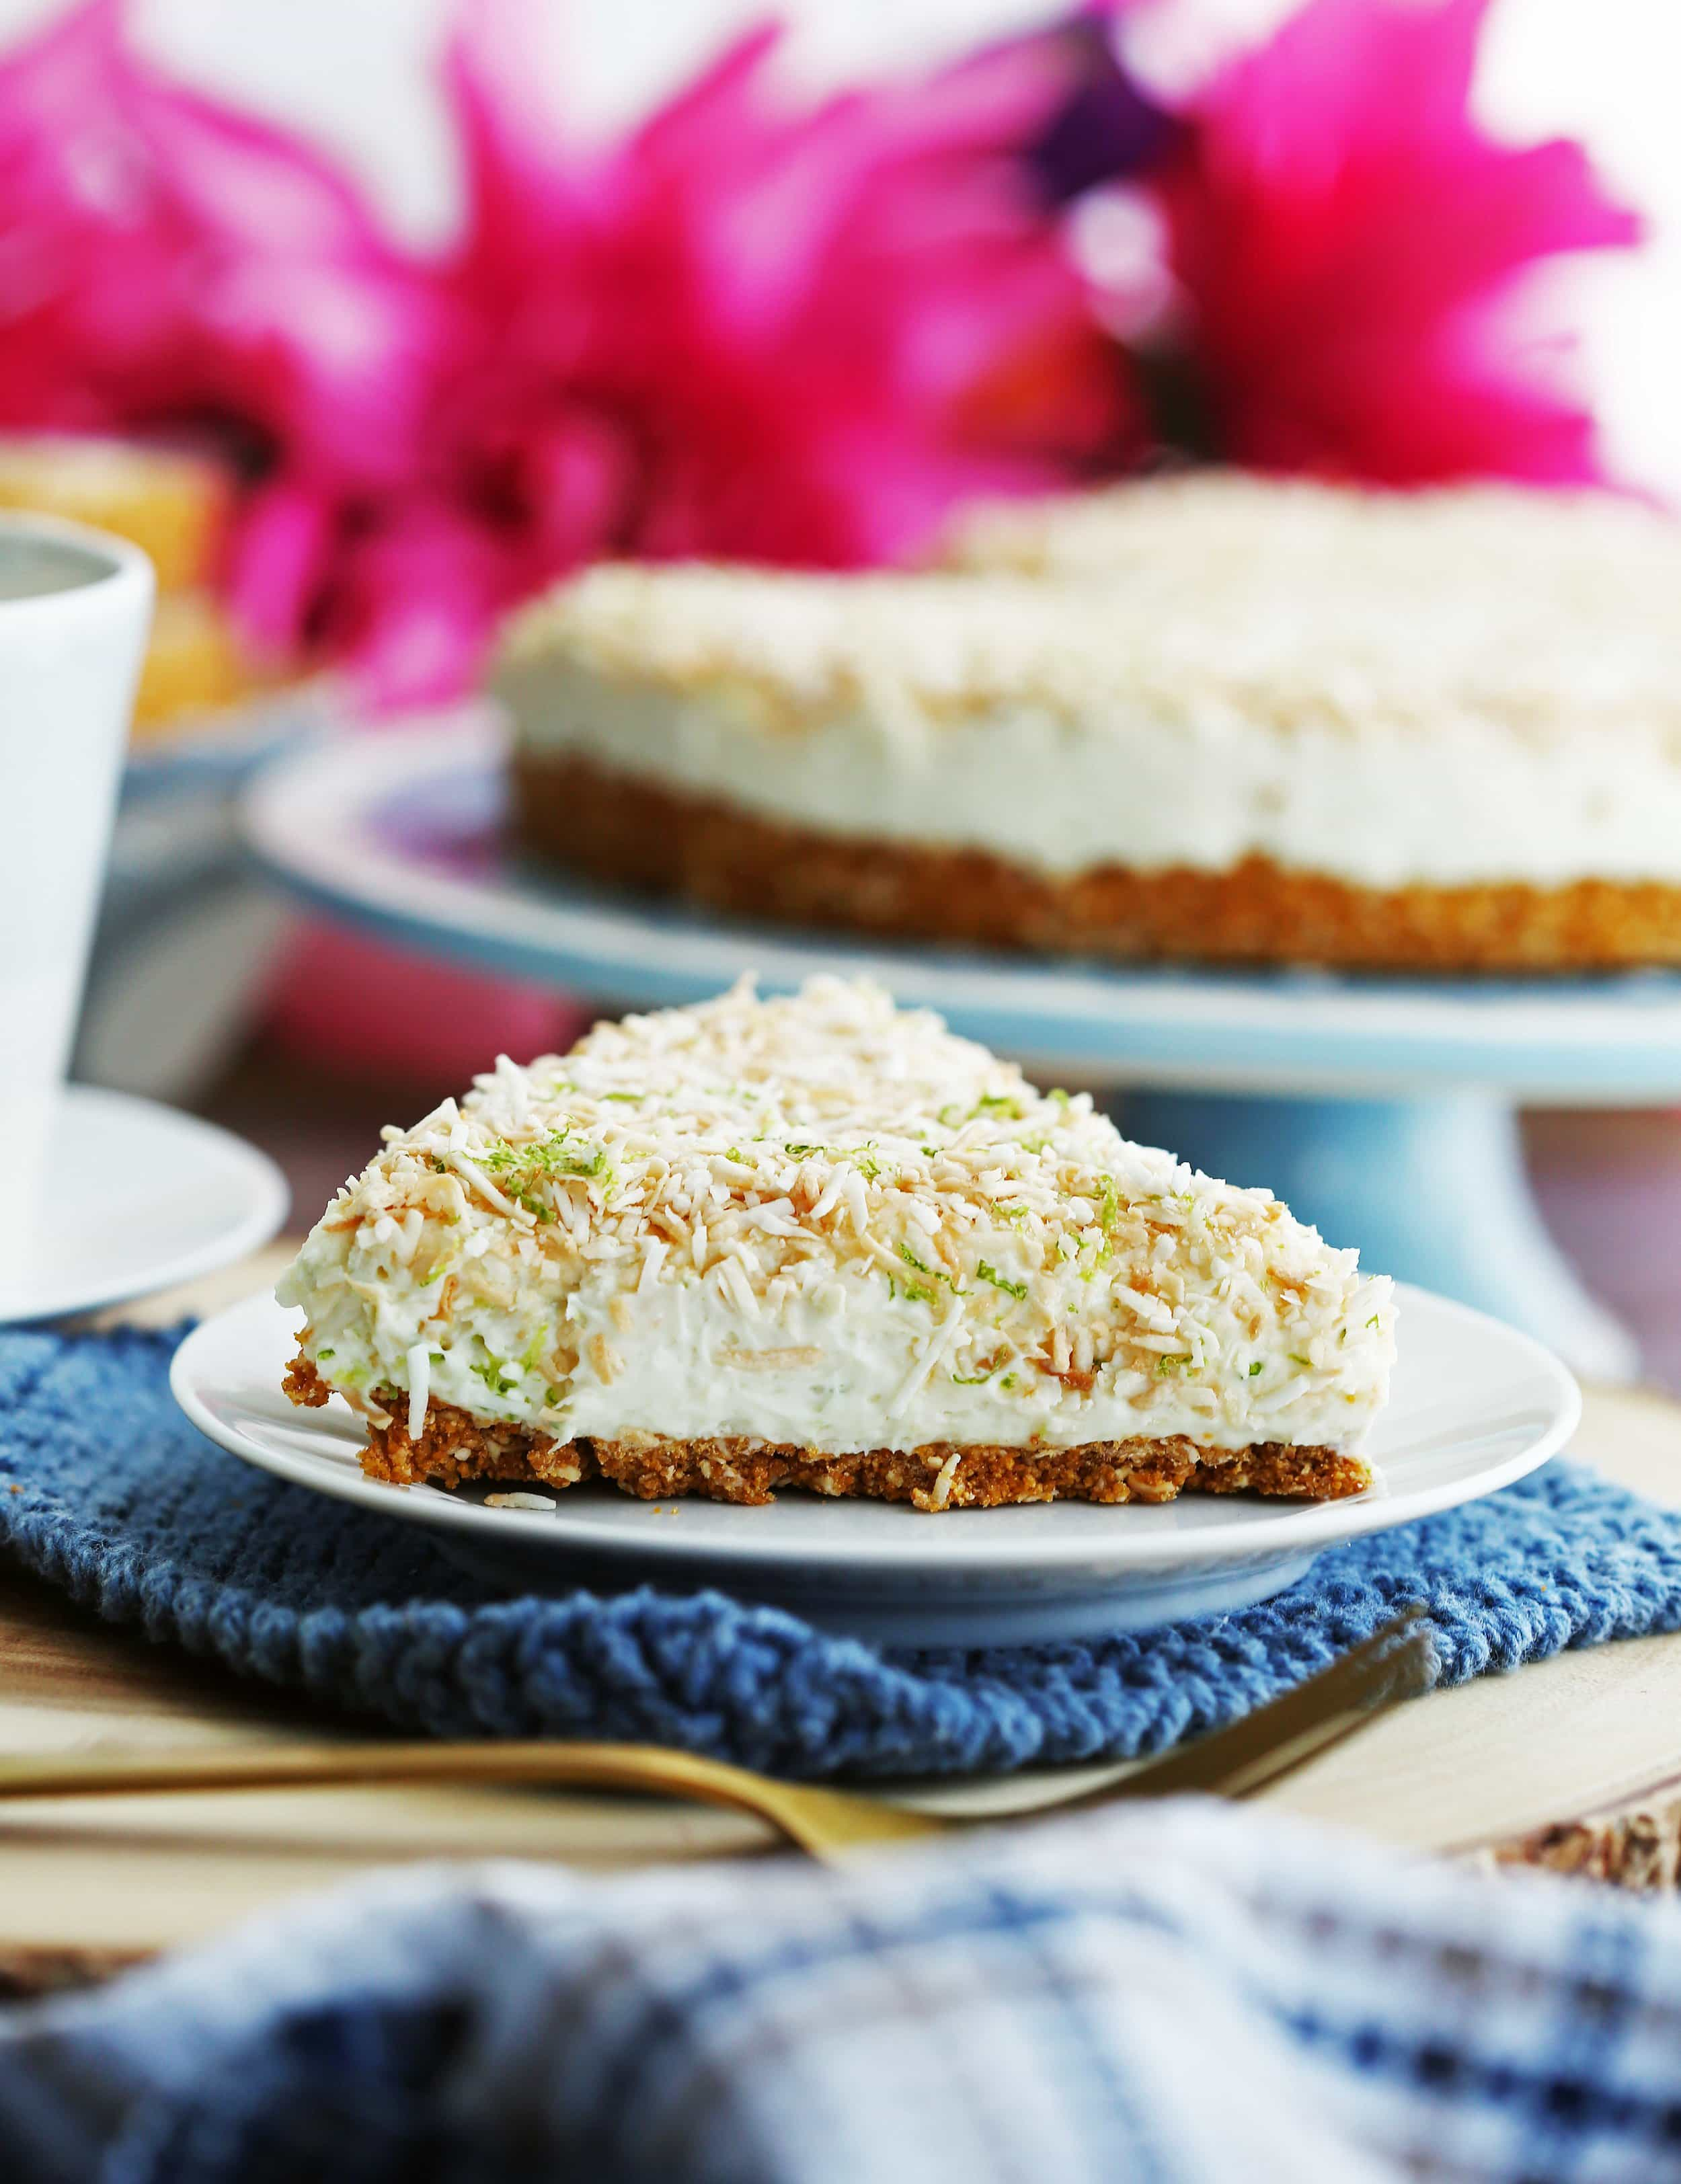 A closeup side view of a slice of no-bake coconut lime mascarpone cheesecake on a white plate.